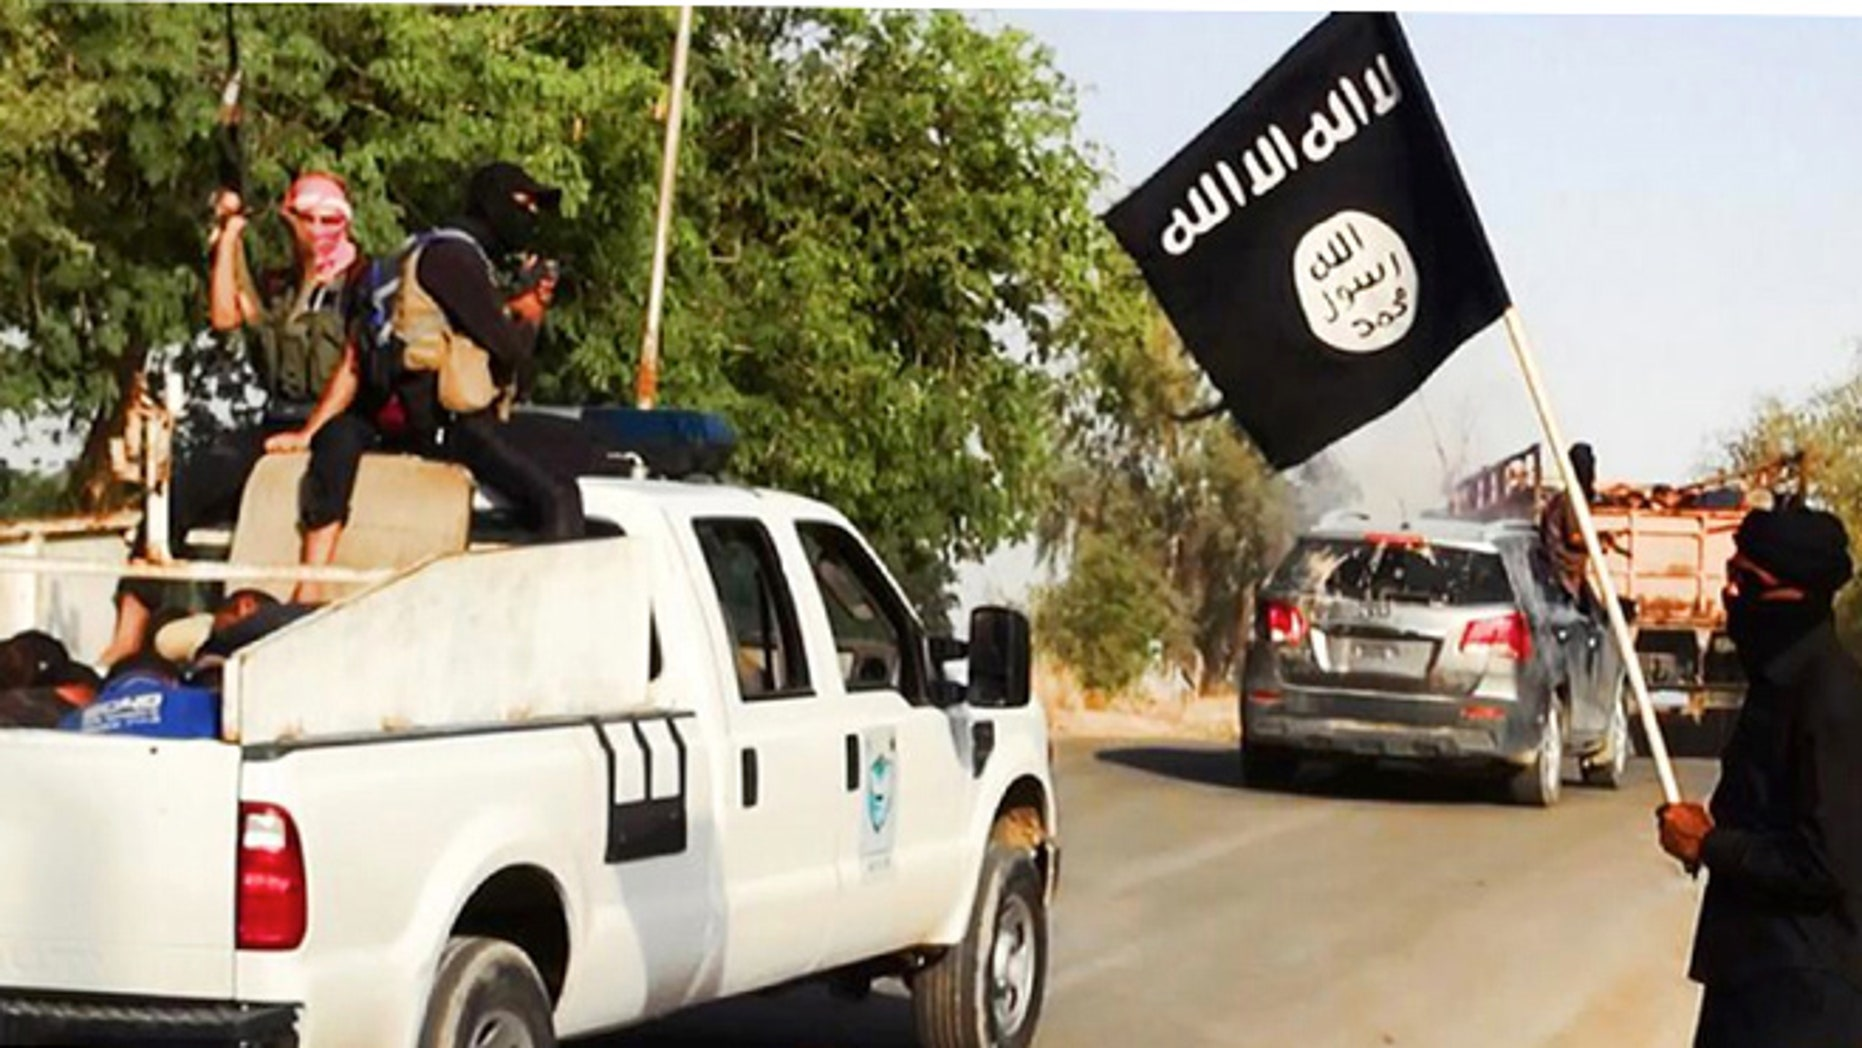 June 14, 2014: Image on a militant website that appears to show militants from Islamic State of Iraq and the Levant near Tikrit, Iraq.